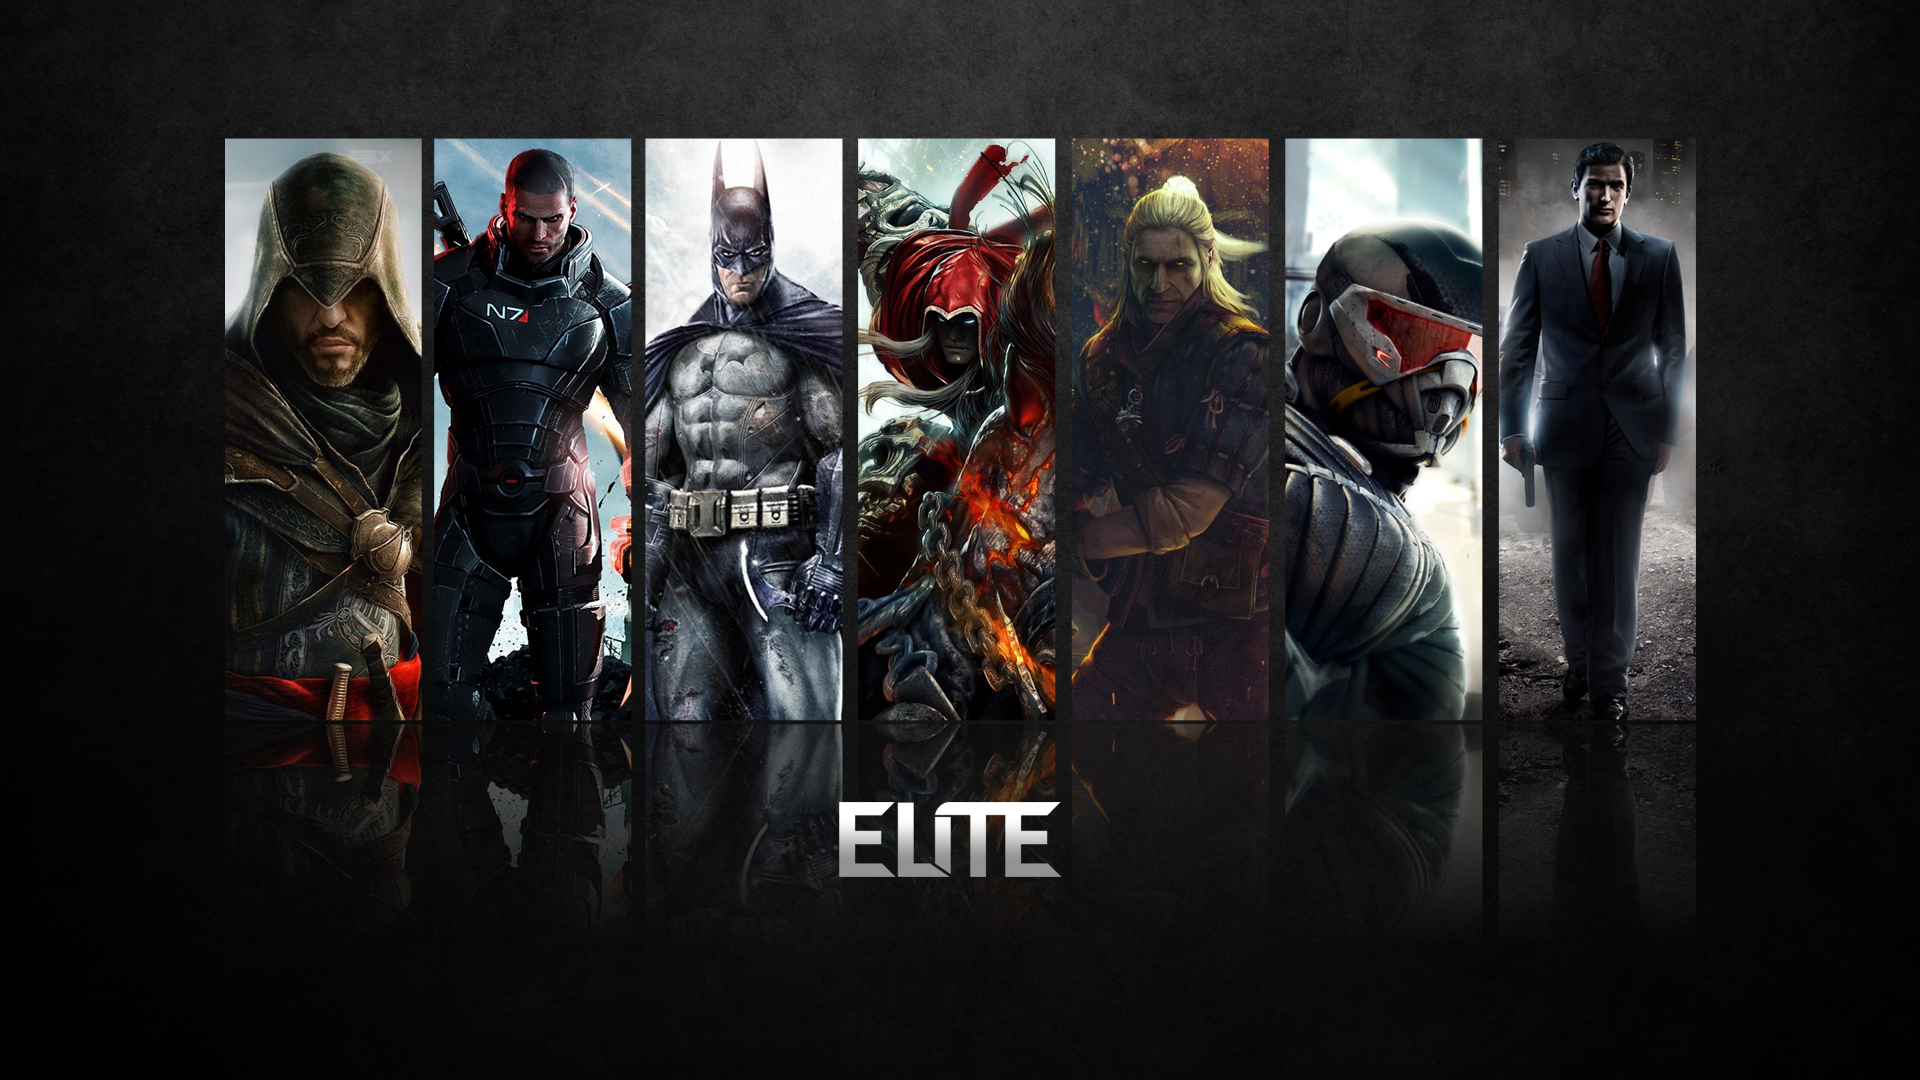 Game characters wallpaper   Video game characters wallpaper 1920x1080